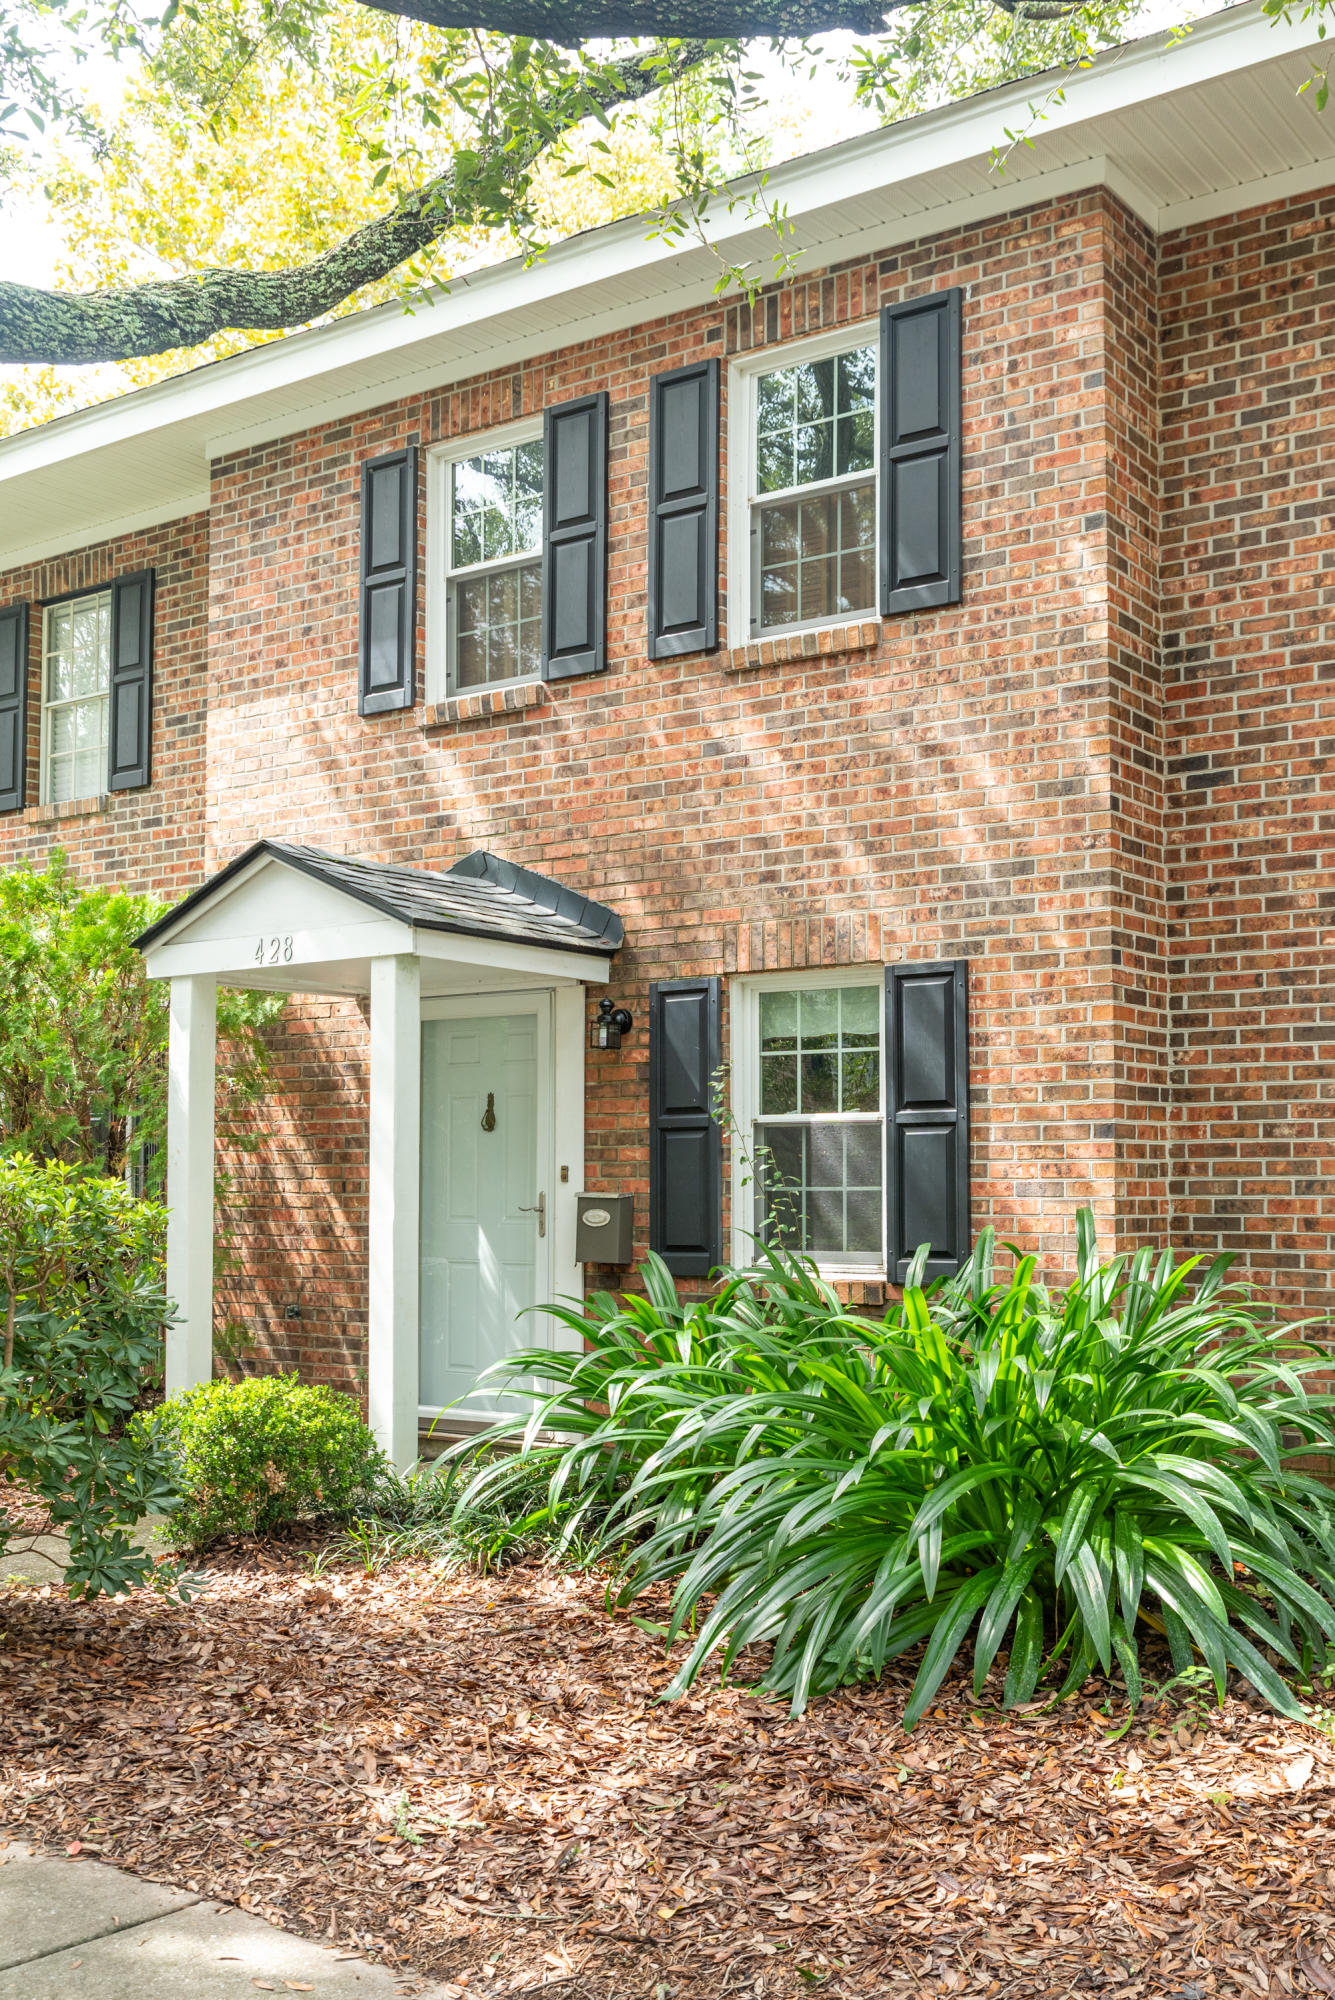 Heritage Village Homes For Sale - 428 Carriage, Mount Pleasant, SC - 25